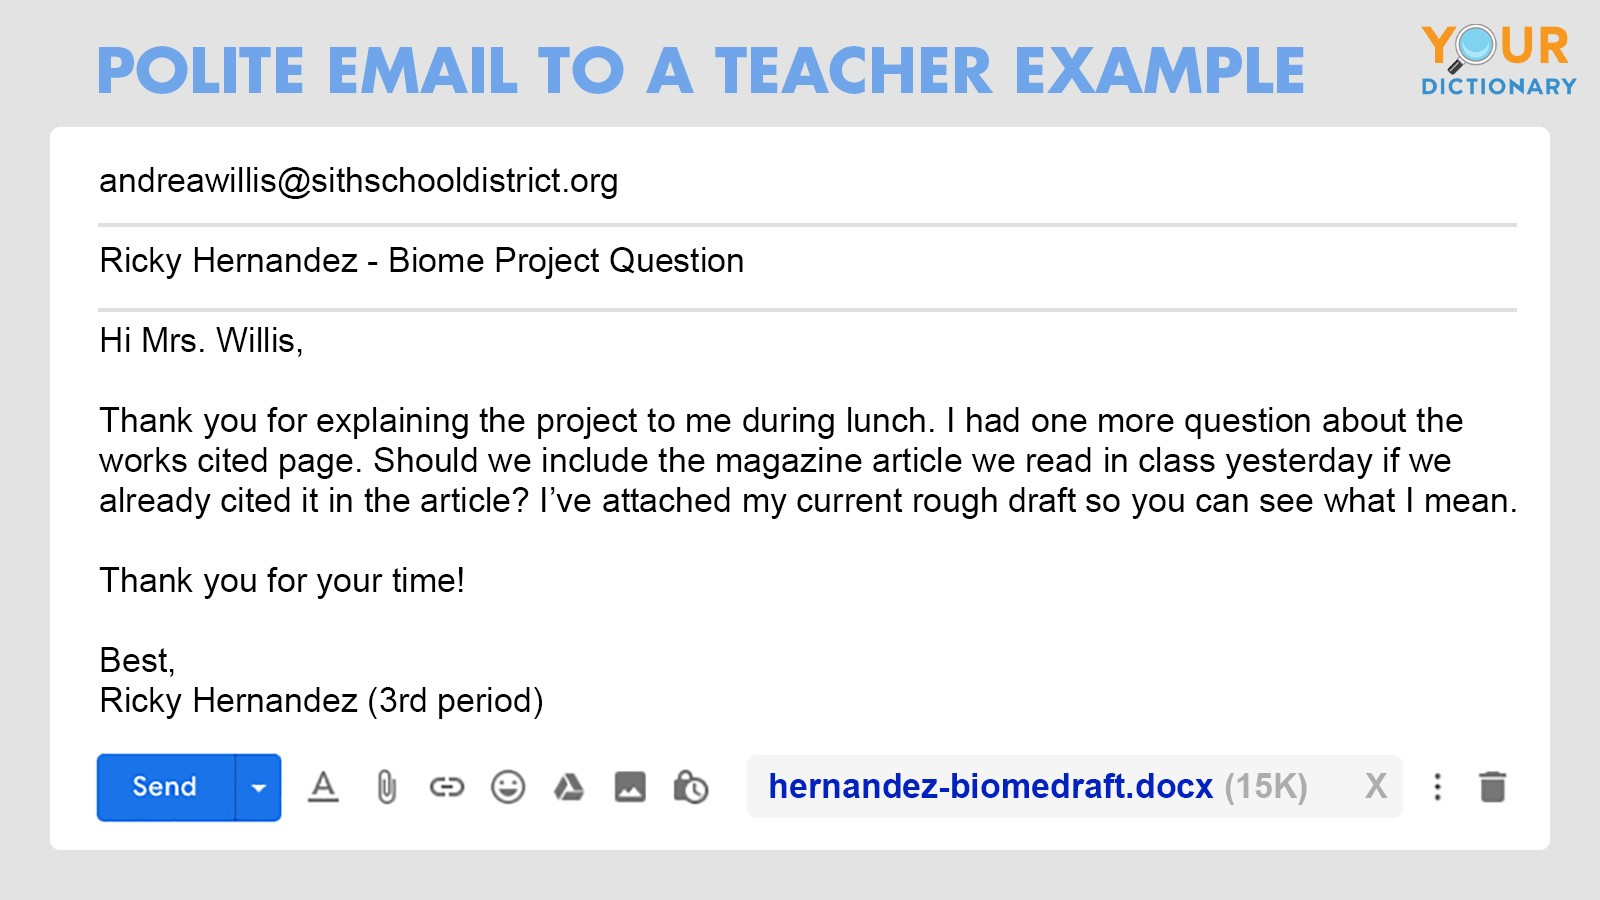 polite email to a teacher example